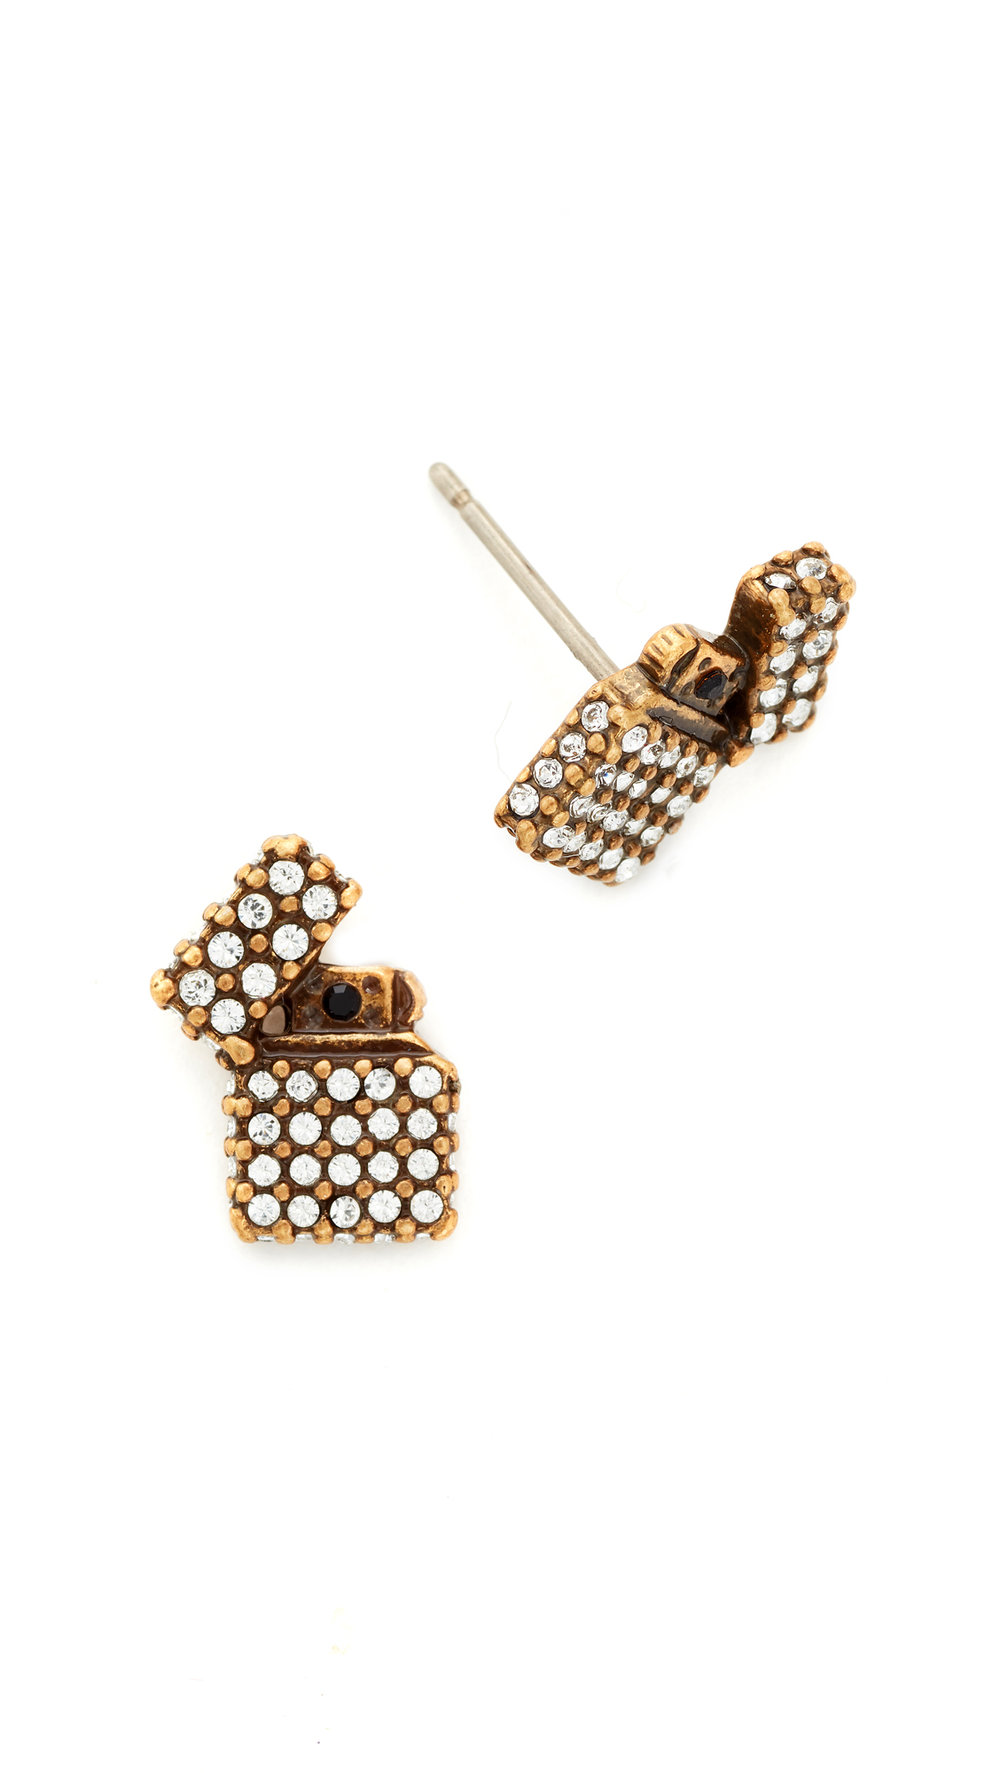 marc jacobs stud earrings